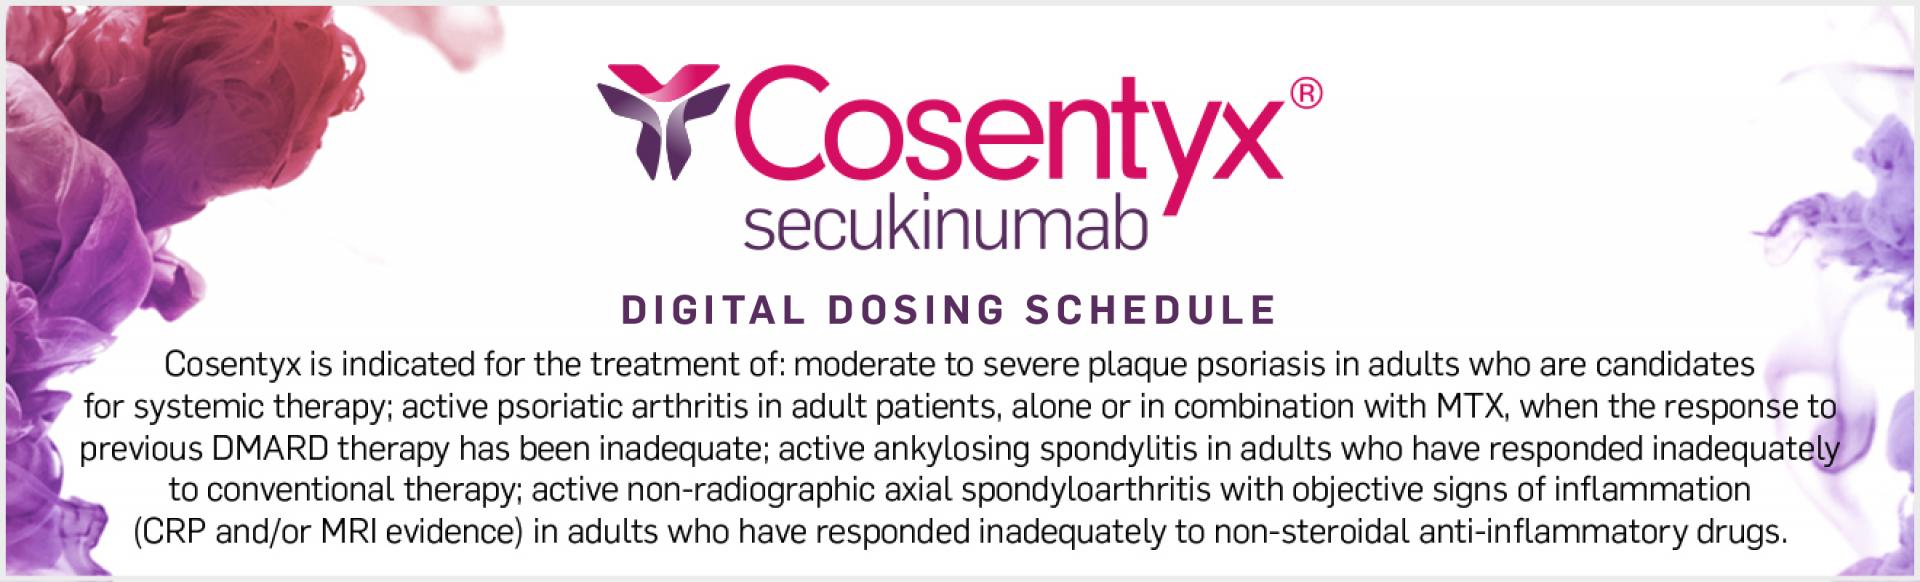 Top banner. Cosentyx digital dosing schedule